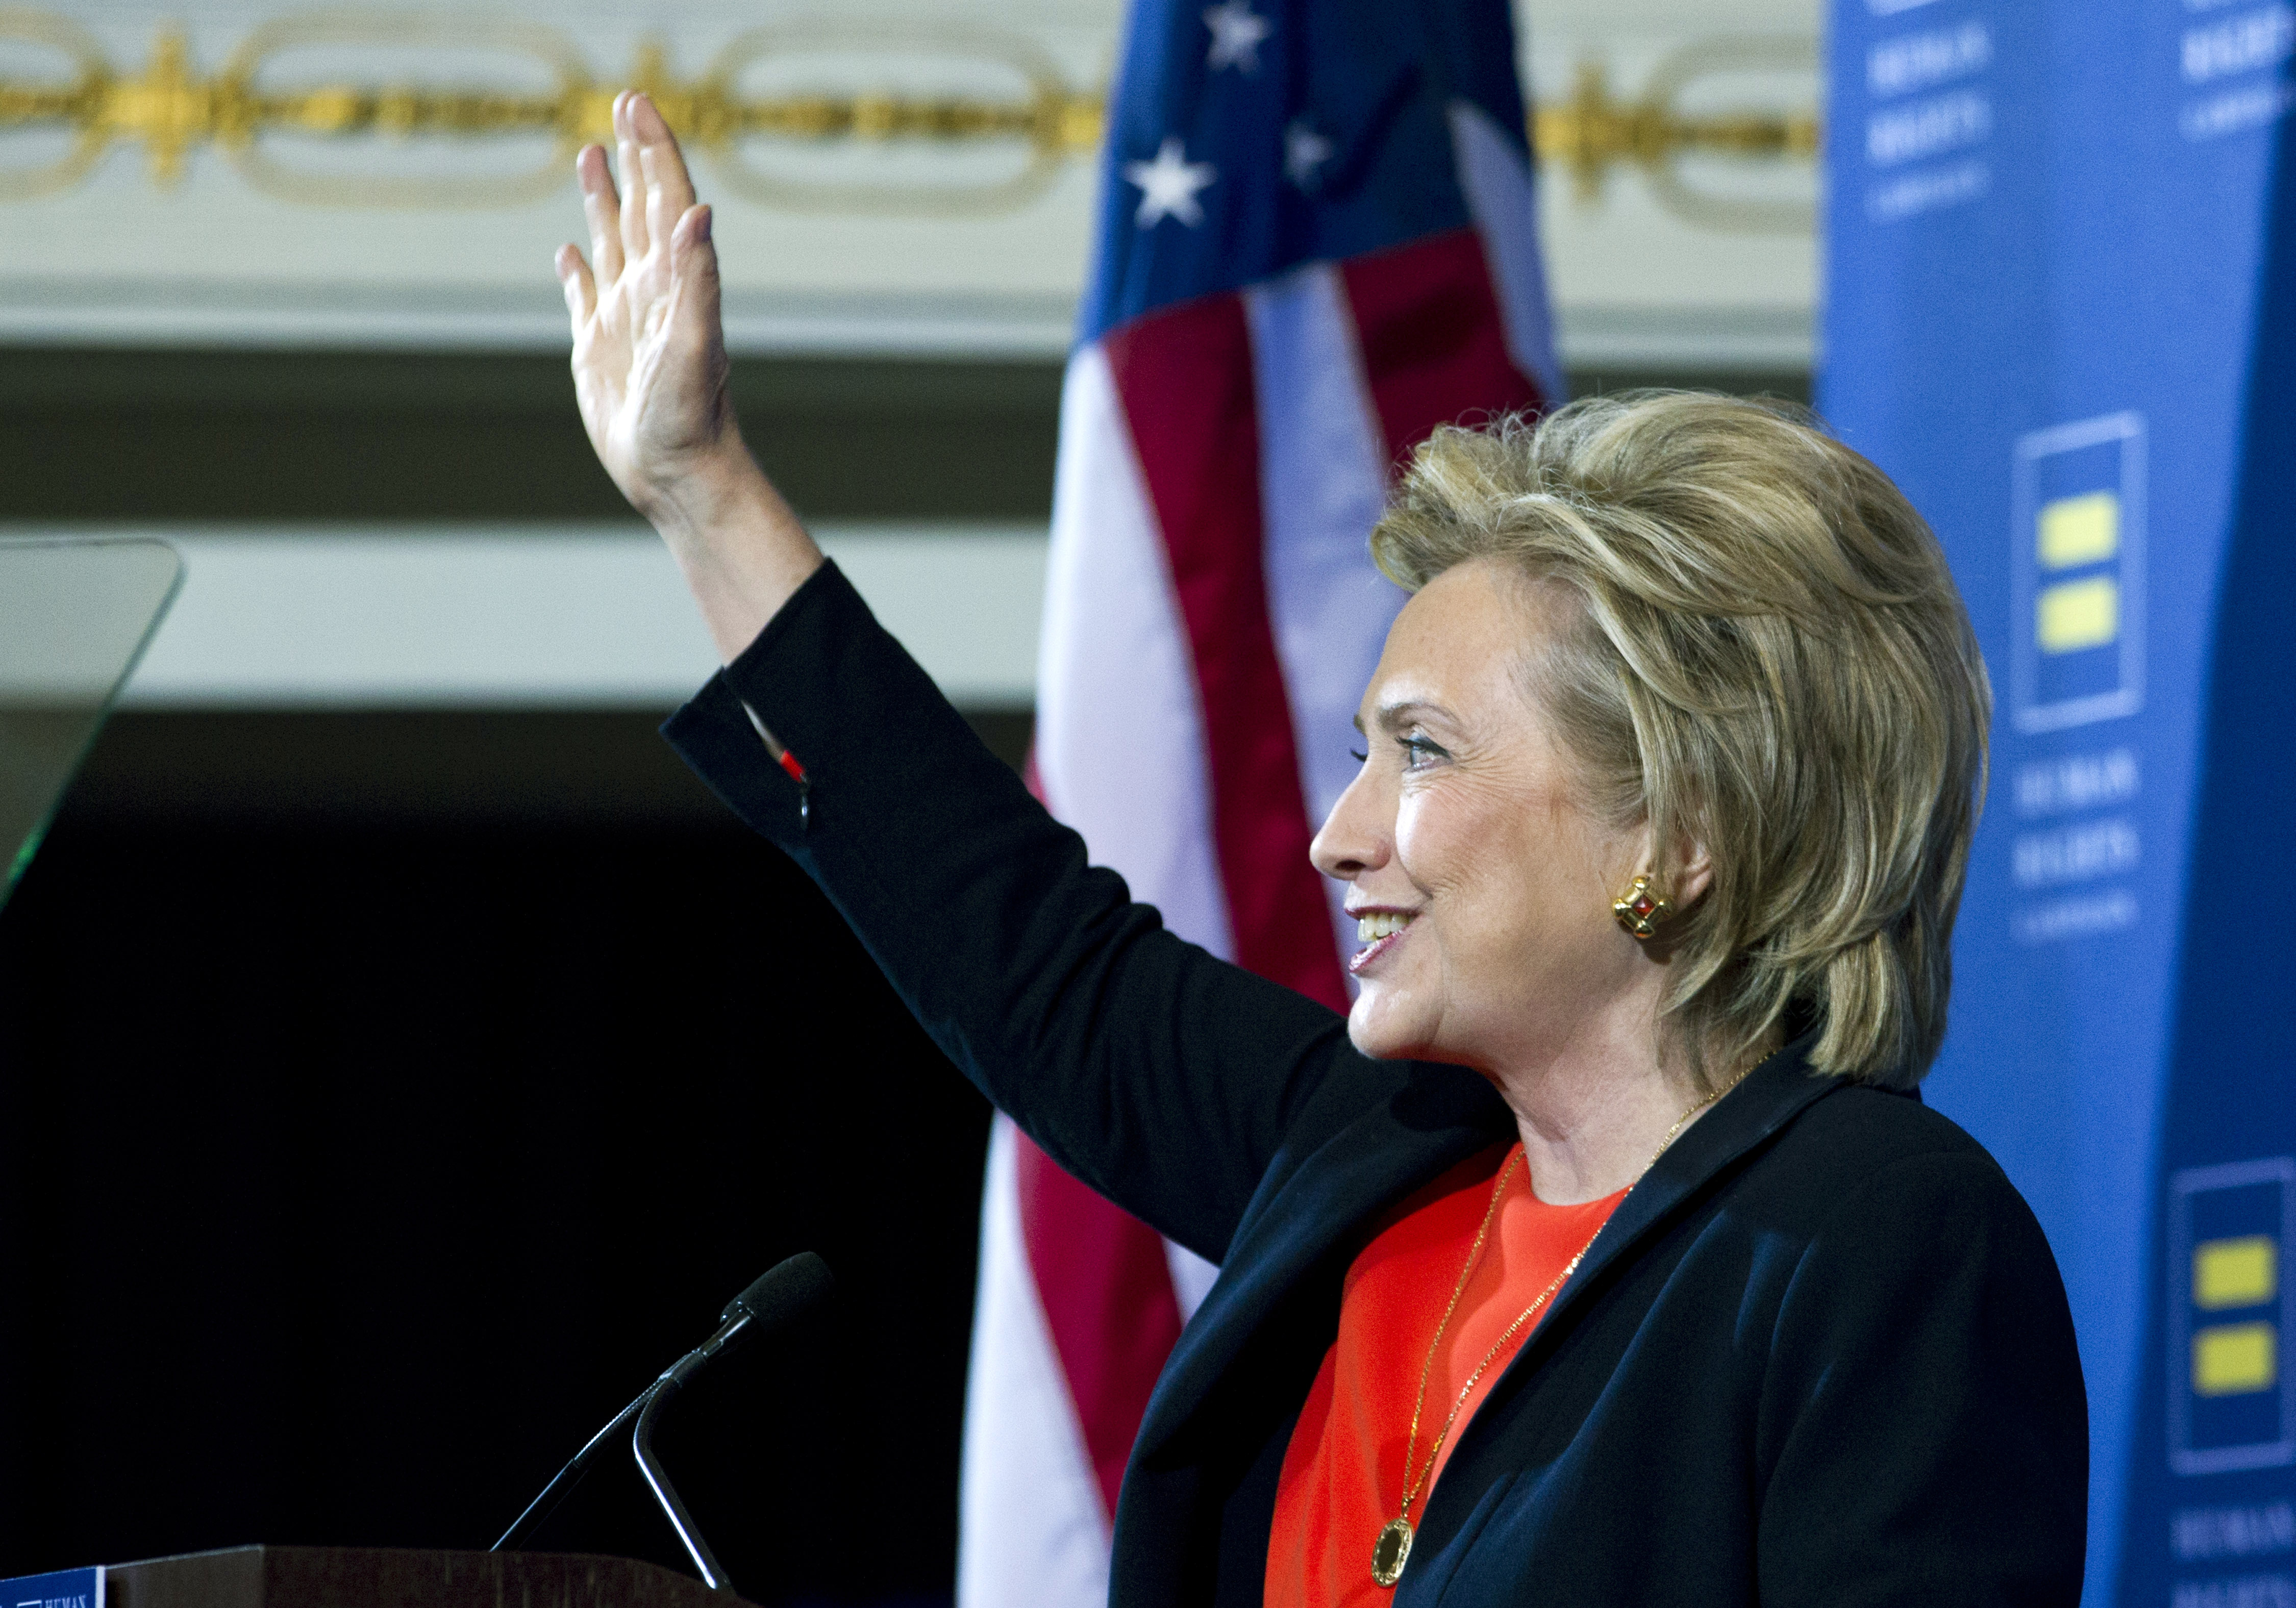 Hillary Clinton gestures as she speaks to the Human Rights Campaign in Washington, on Oct. 3, 2015.